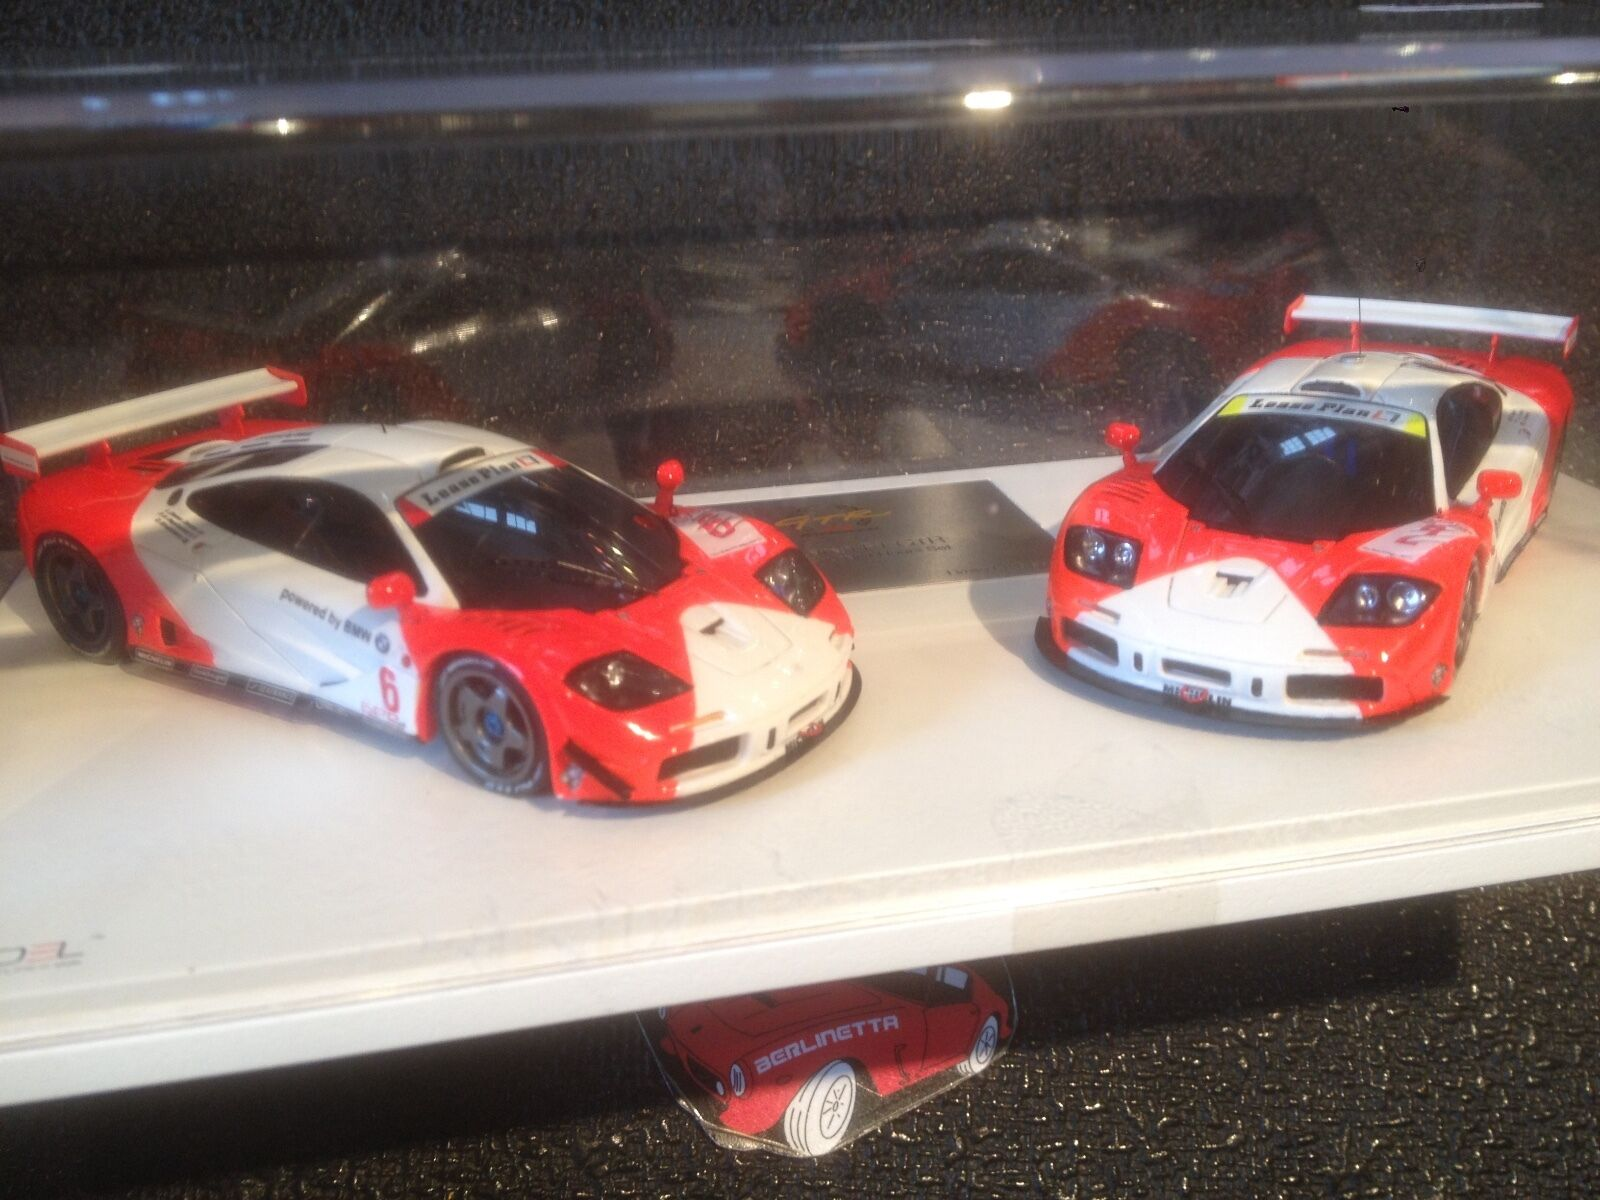 TSMMODEL MCLAREN F1 GTR SET 1996 ZHUHAI 4 HOURS 1 43 LIMITED 120 SETS